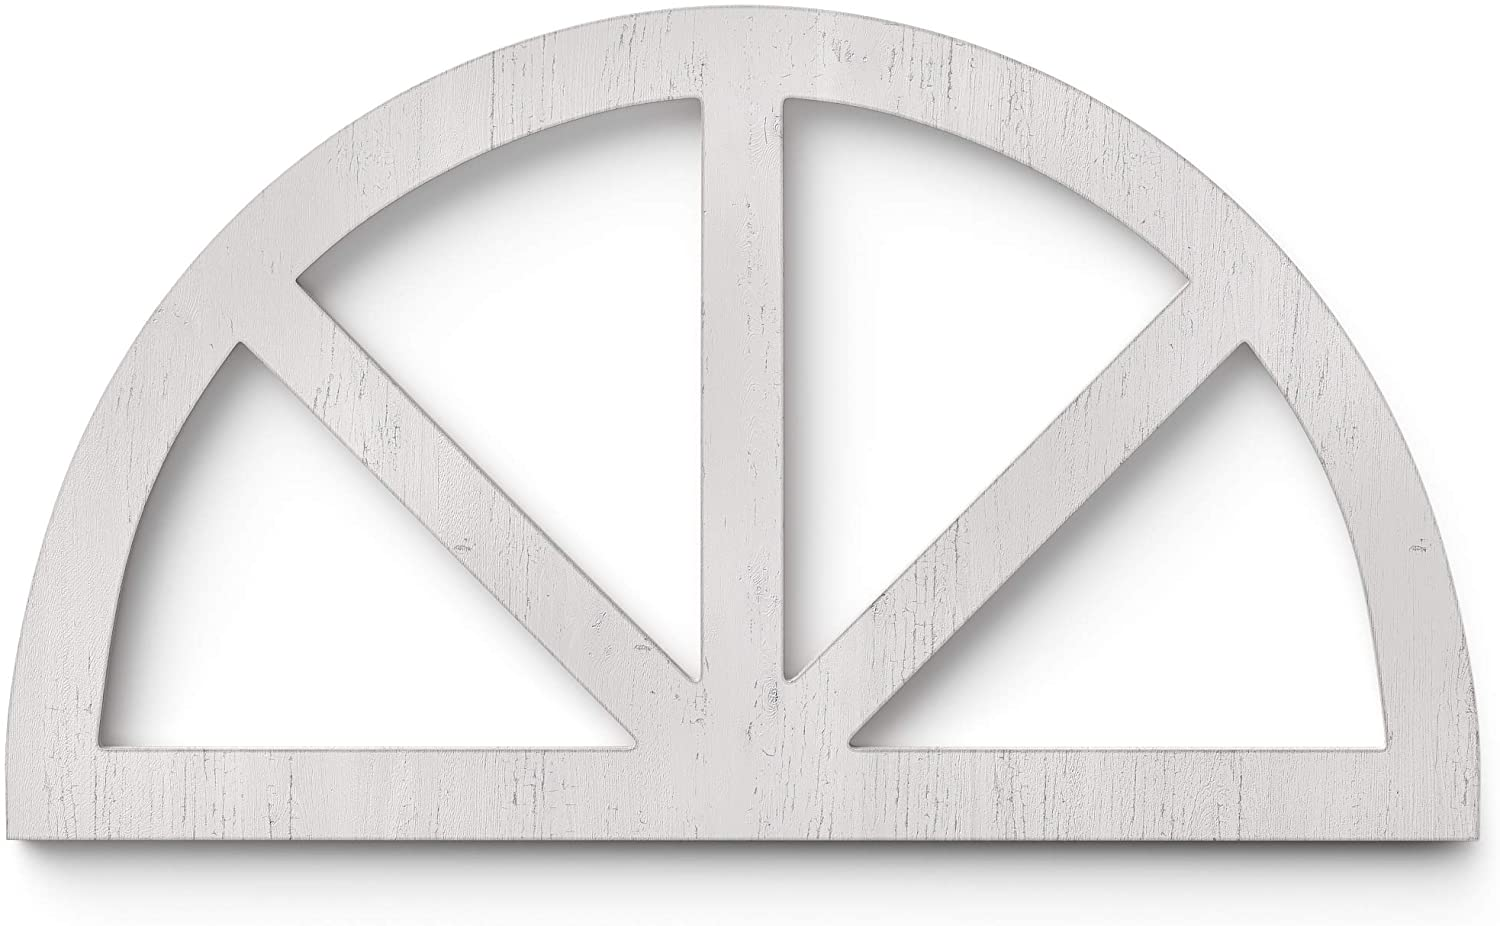 Barnyard Designs Rustic Wood Cathedral Arch Window Frame, Decorative Arched Window Pane Wall Art, Vintage Farmhouse Country Decor, White, 30